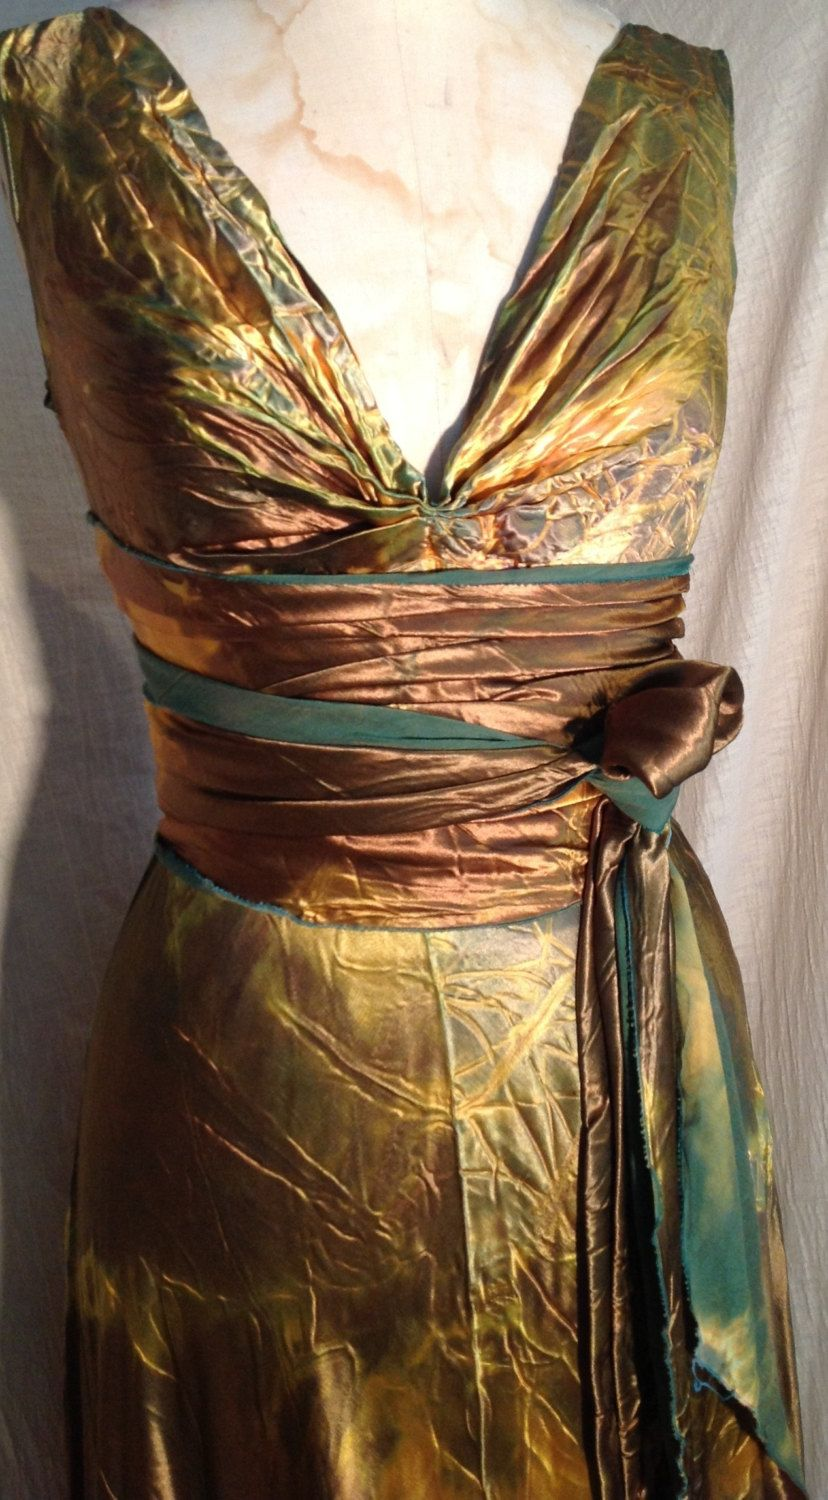 Mother of the bride beach dresses for weddings  Gold bronze HENRY dress with sash by momosoho boho bridal gowns